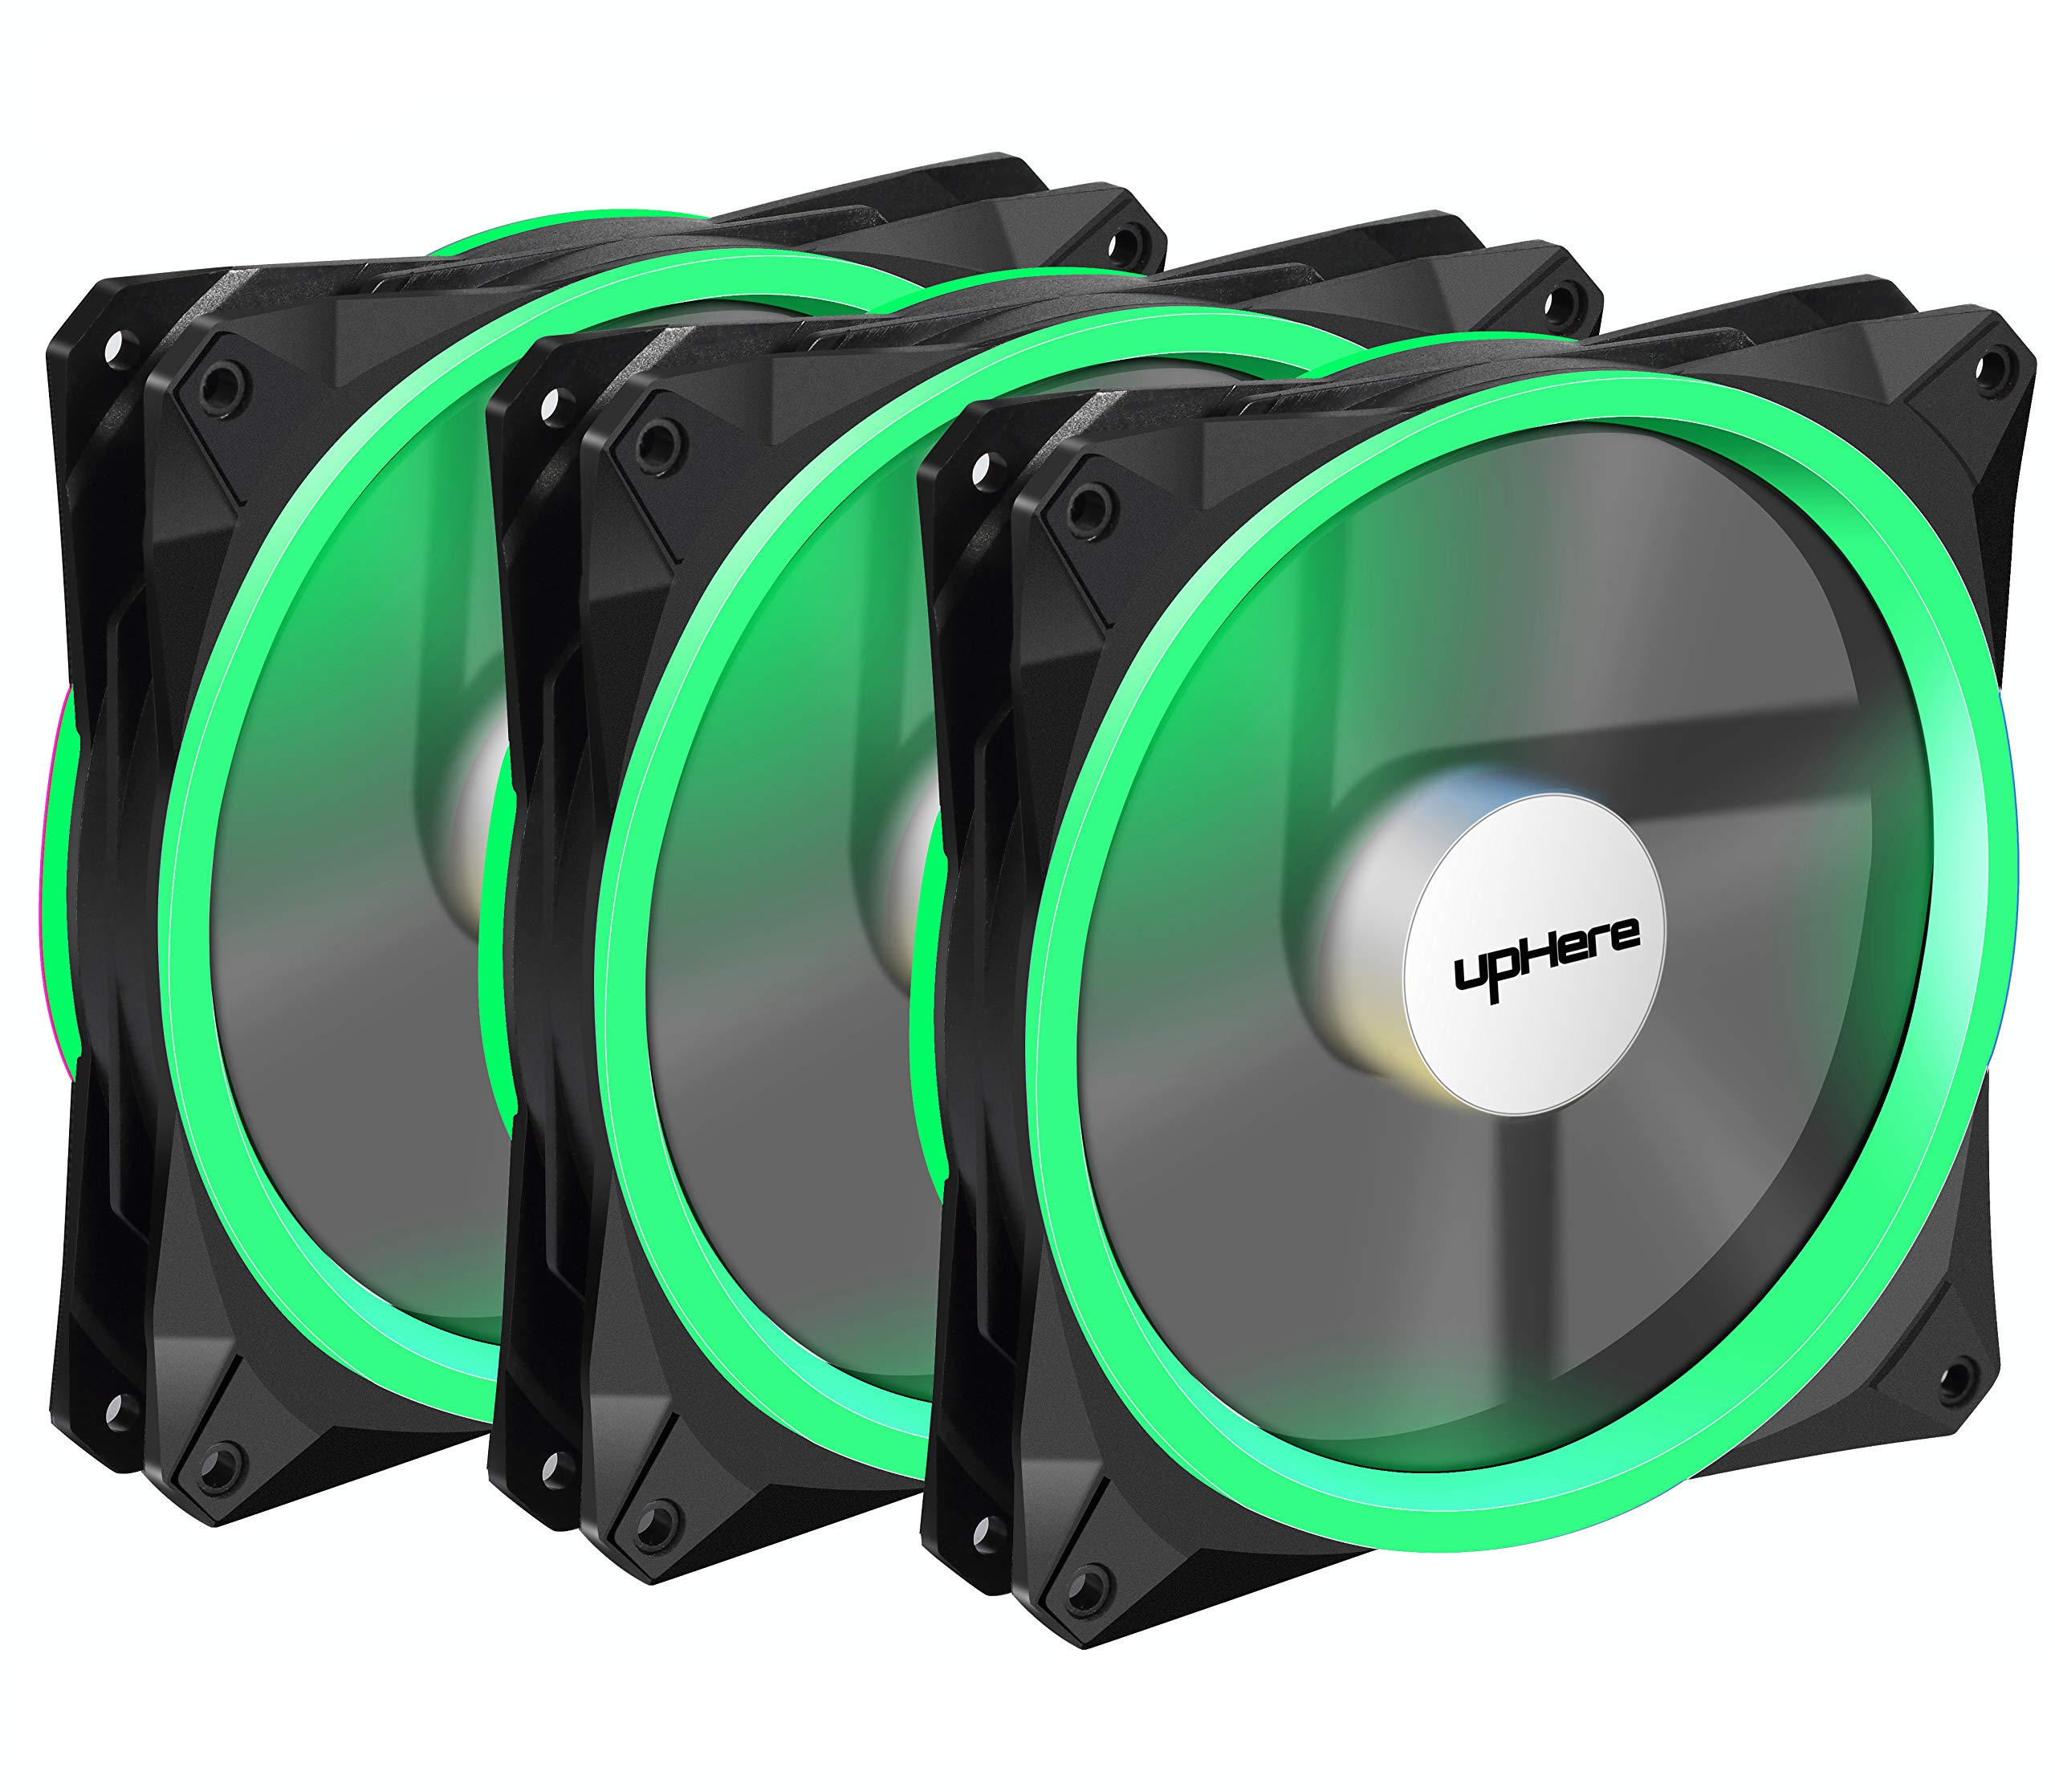 upHere Halo Ring Led 140mm case Fan 3 Pack Hydraulic Bearing Quiet Cooling case Fan for Computer Mirage Color LED Fan 3 pin with Anti Vibration Rubber Pads(Green)/14CMG3-3